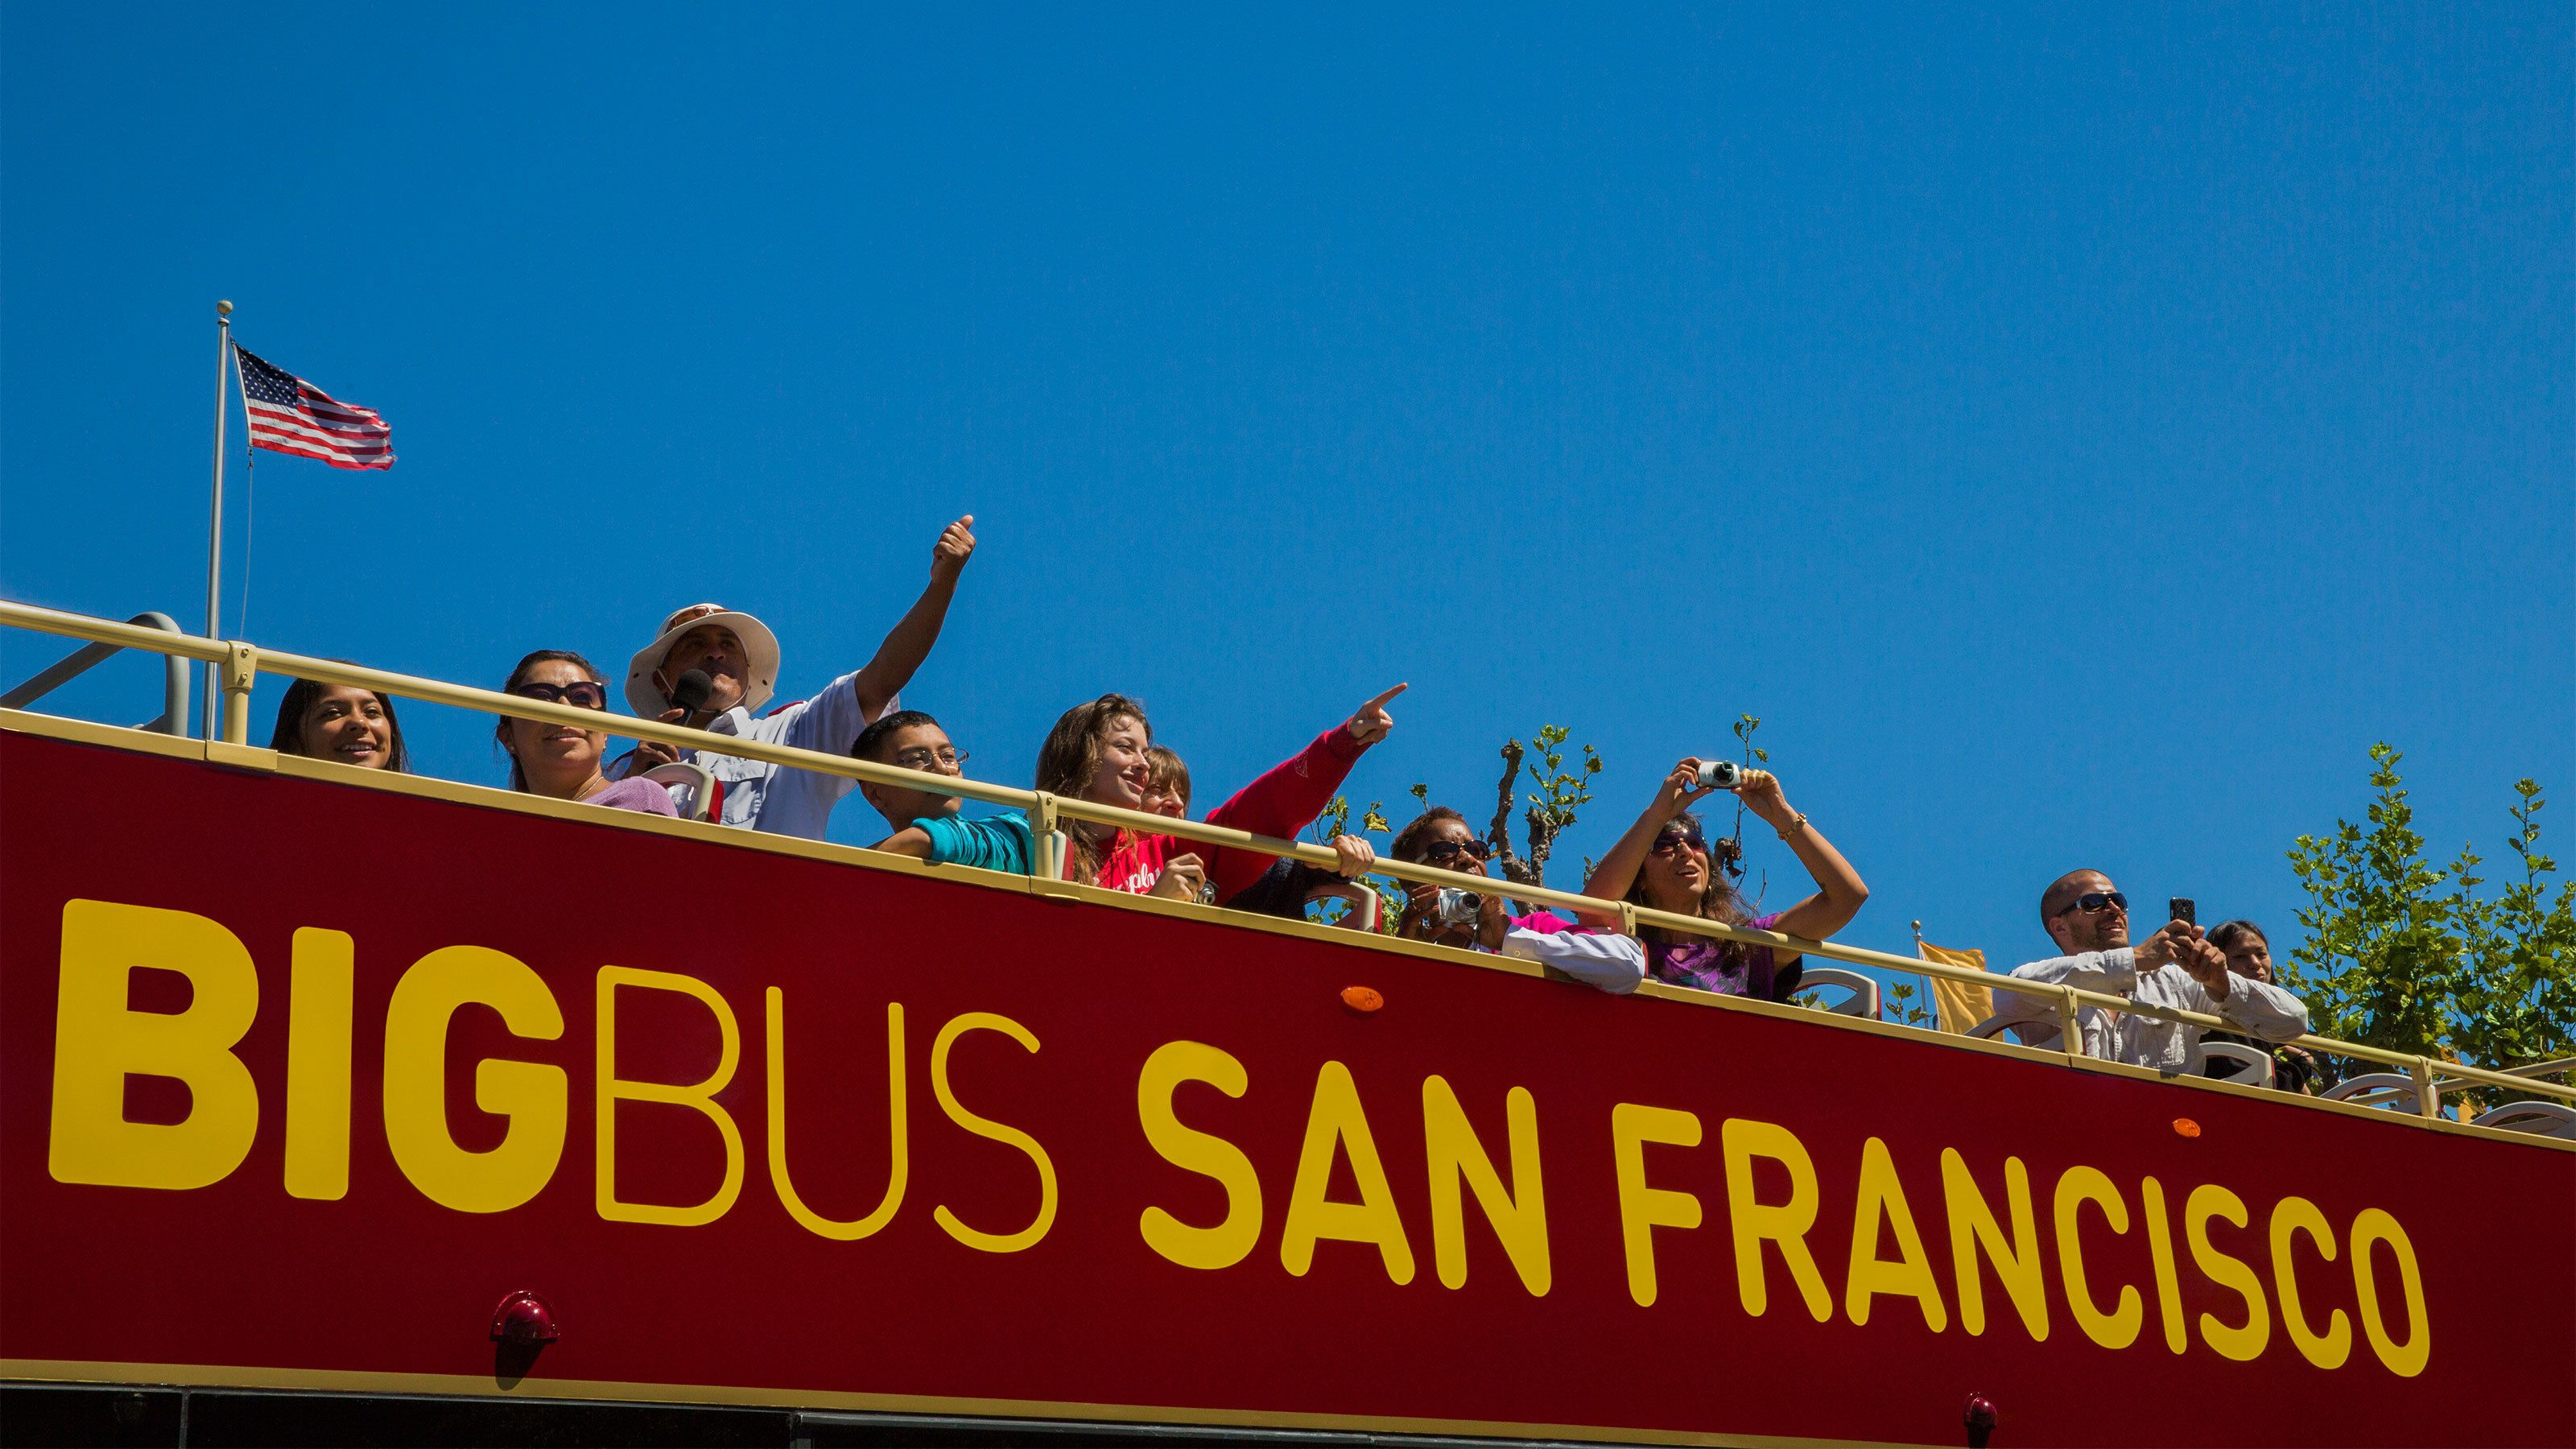 Tour group on sightseeing bus in San Francisco